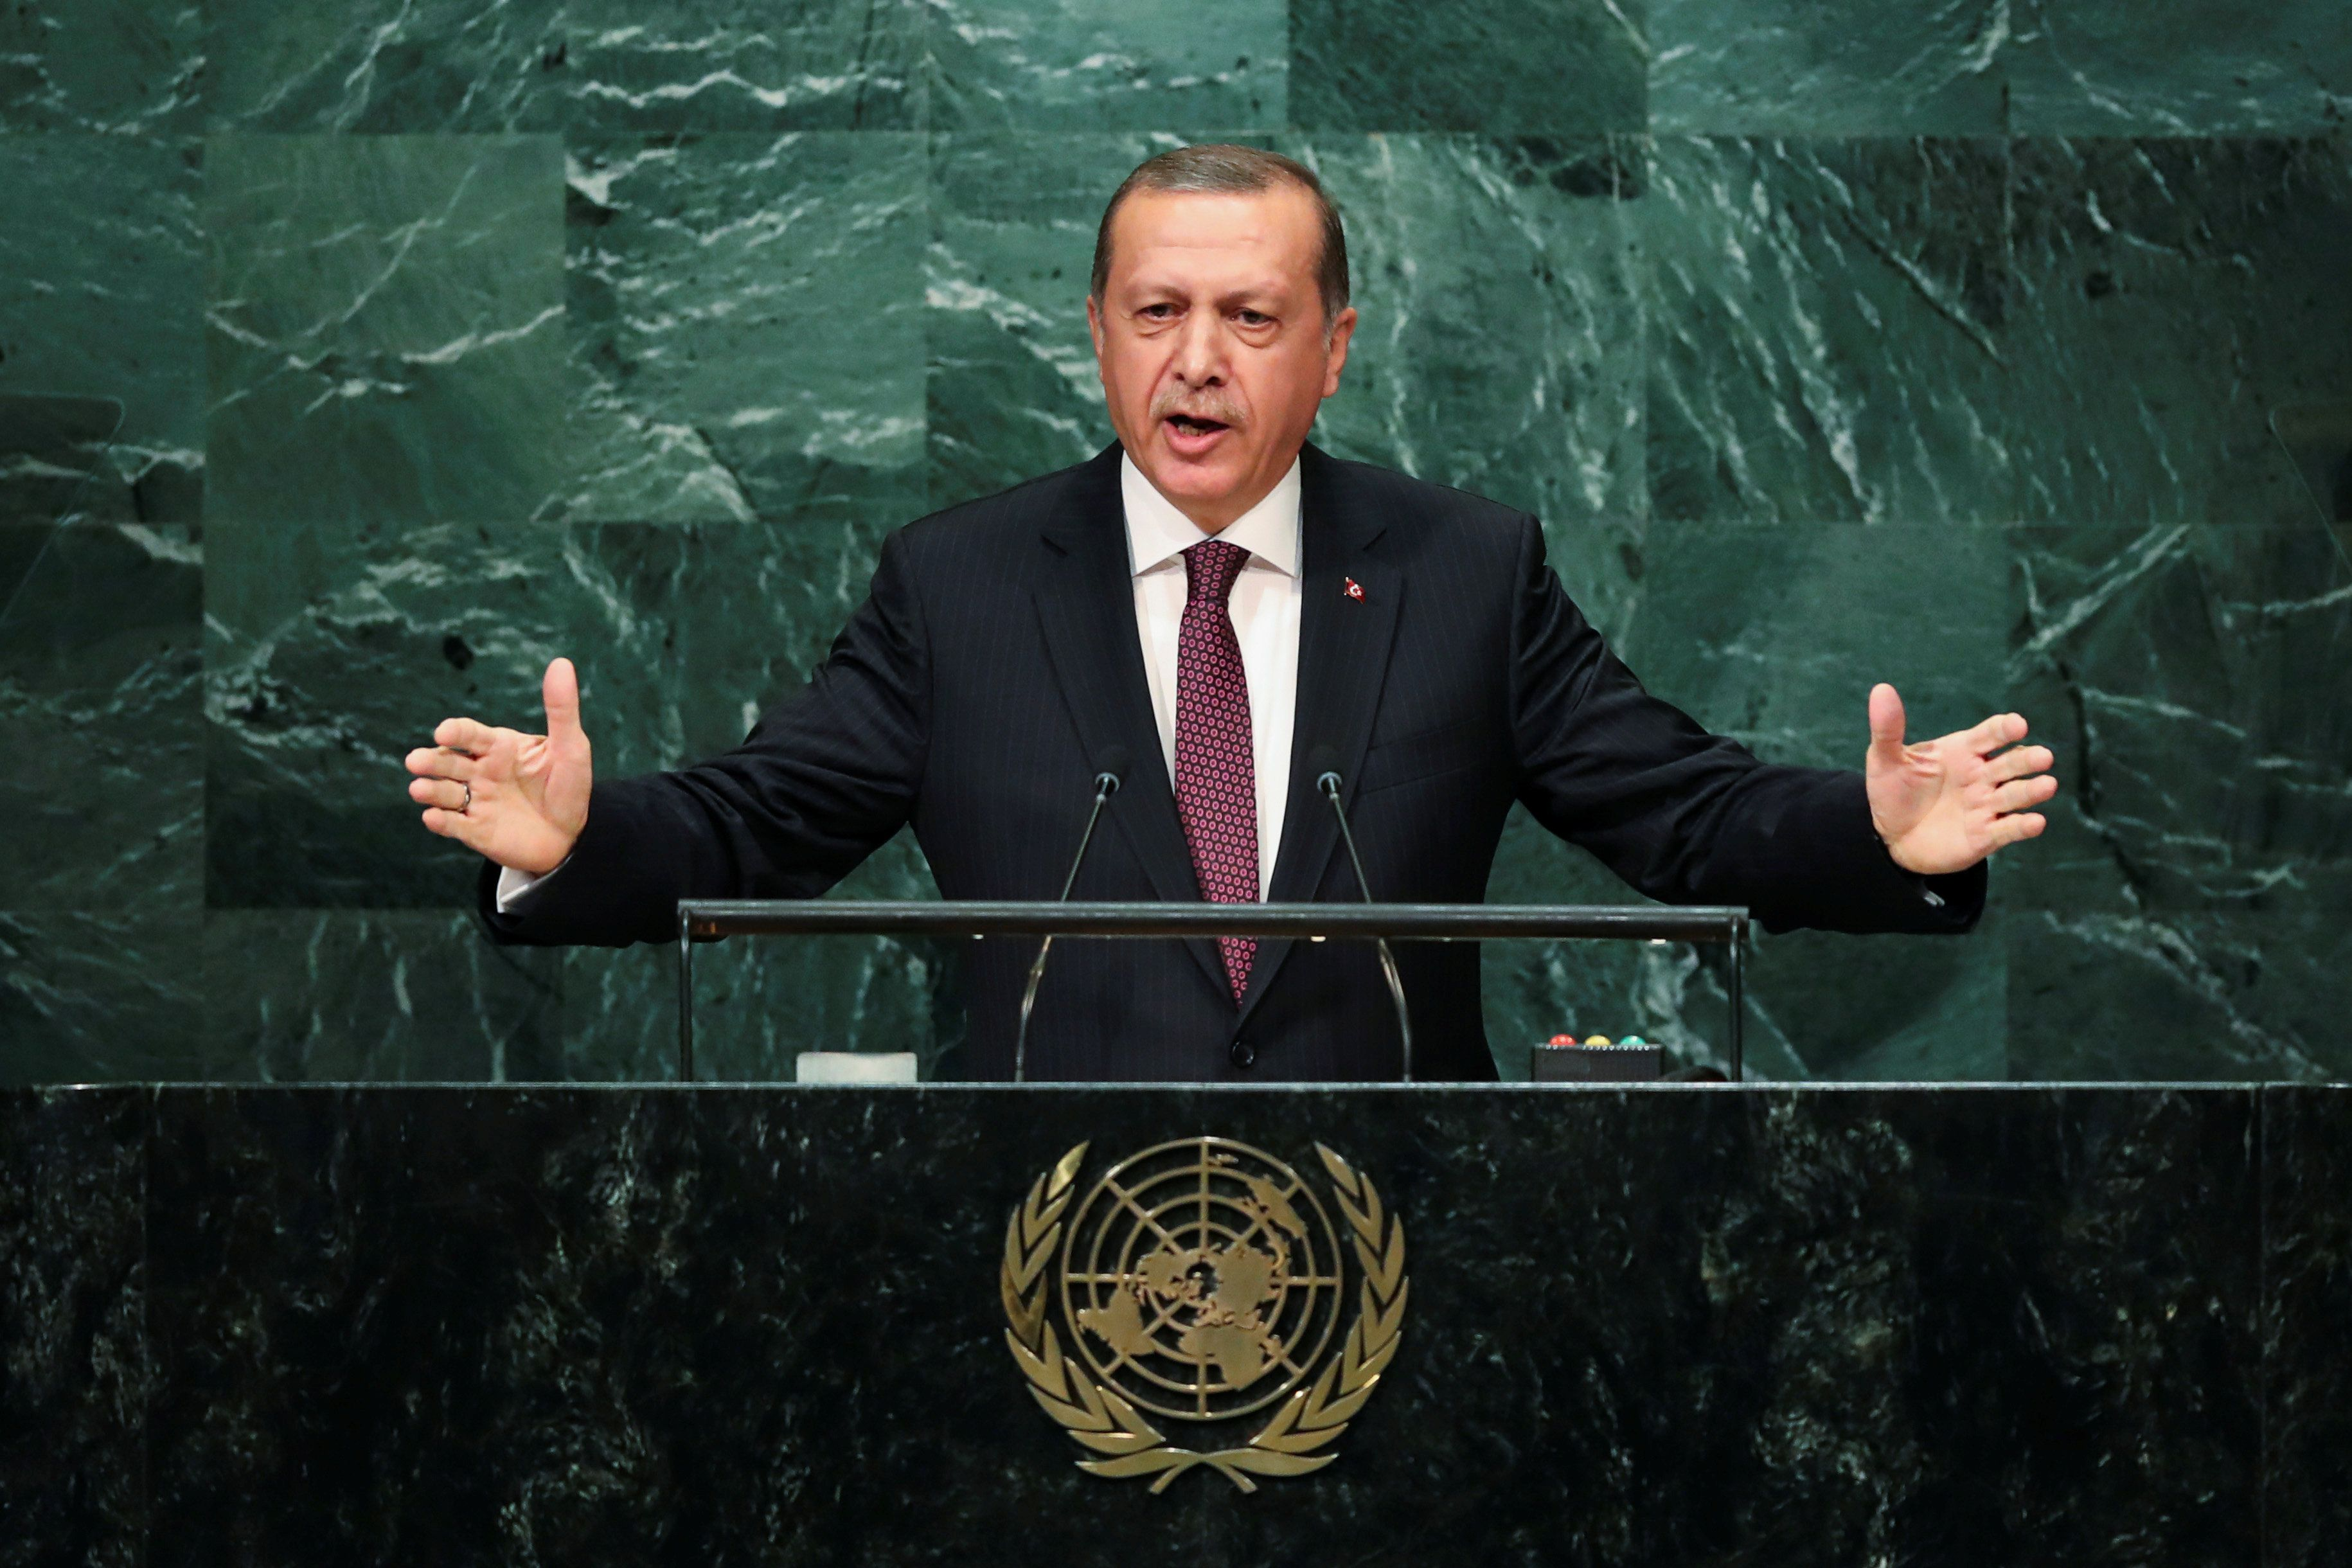 Turkey Criticizes World Leaders For Lack Of Syrian Refugee